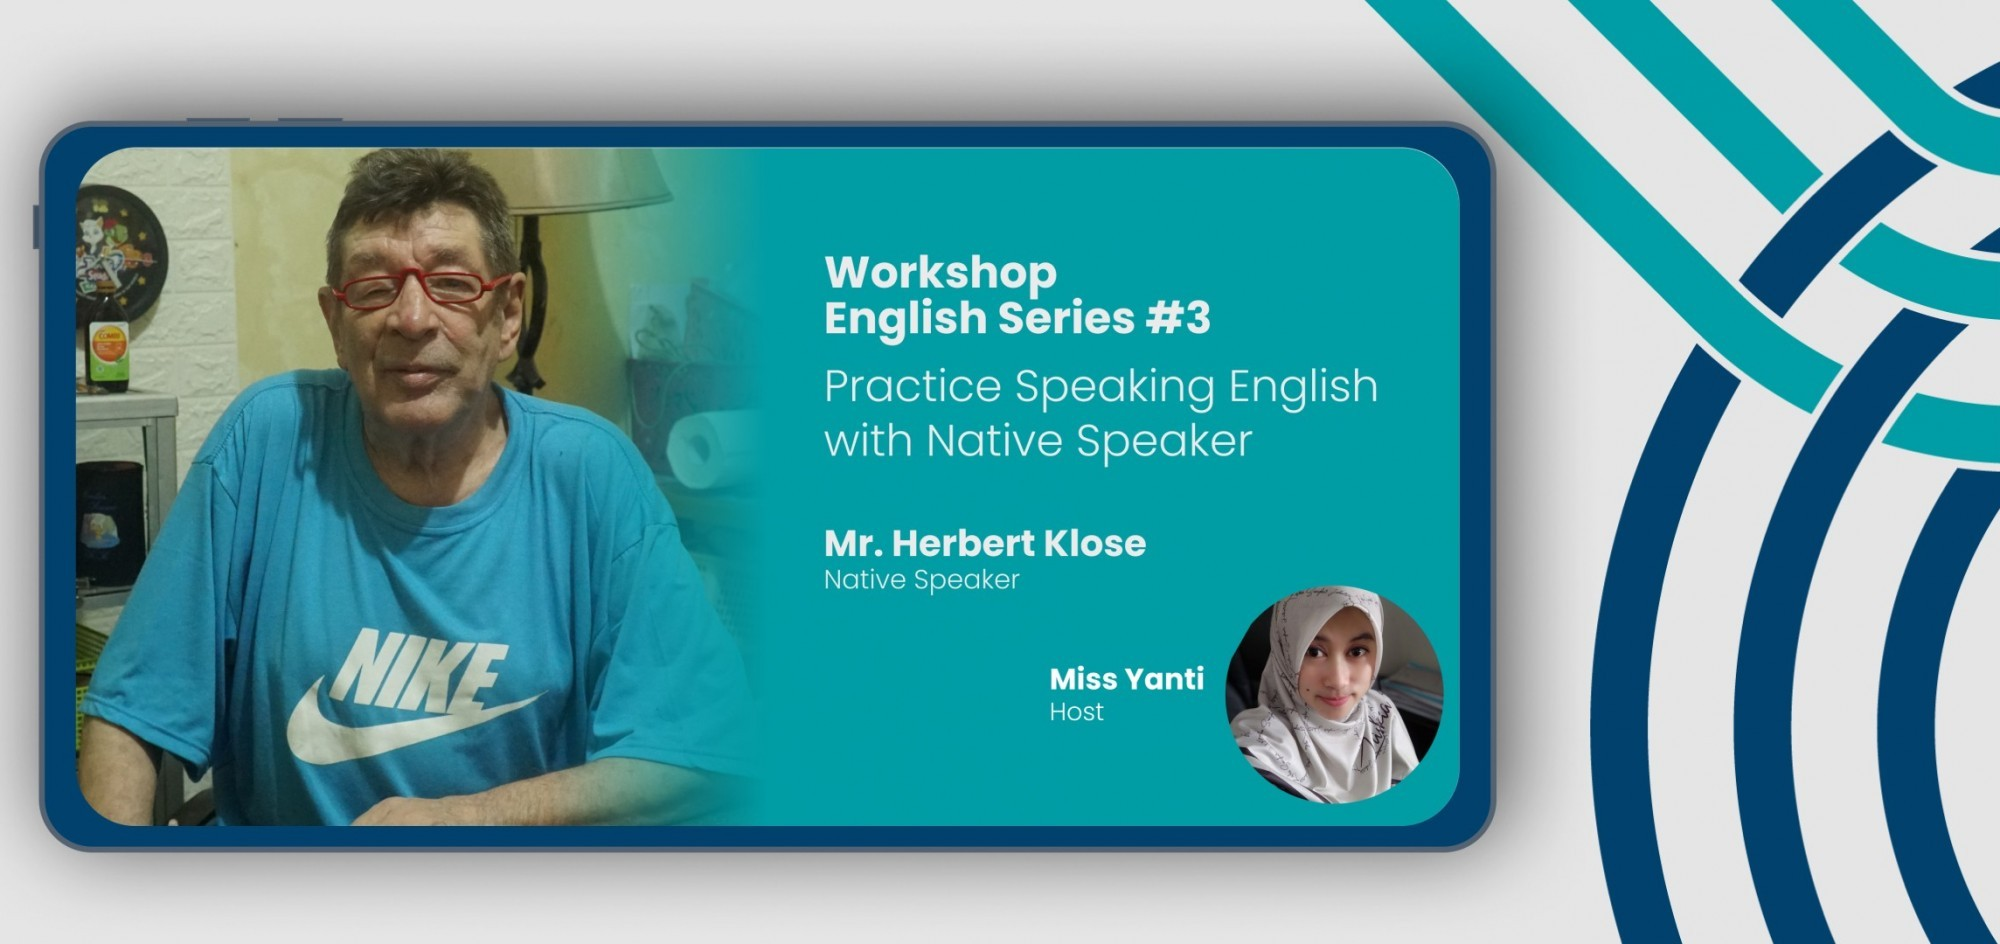 Practice Speaking English with Native Speaker